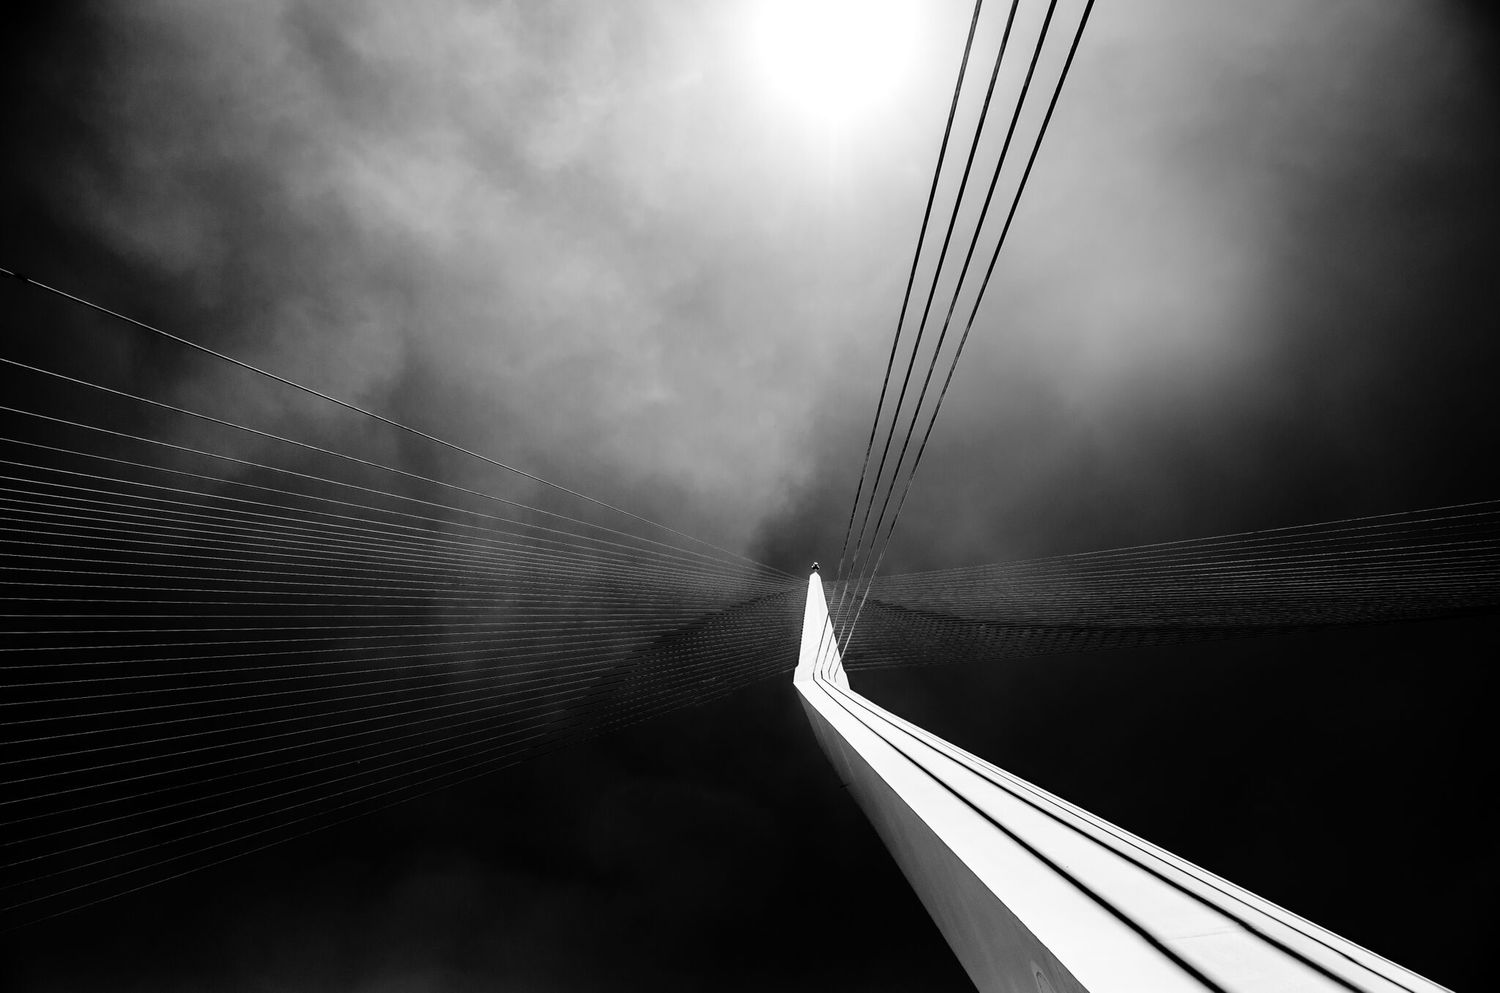 """Calatrava Bridge"" by Dor Kedmi"